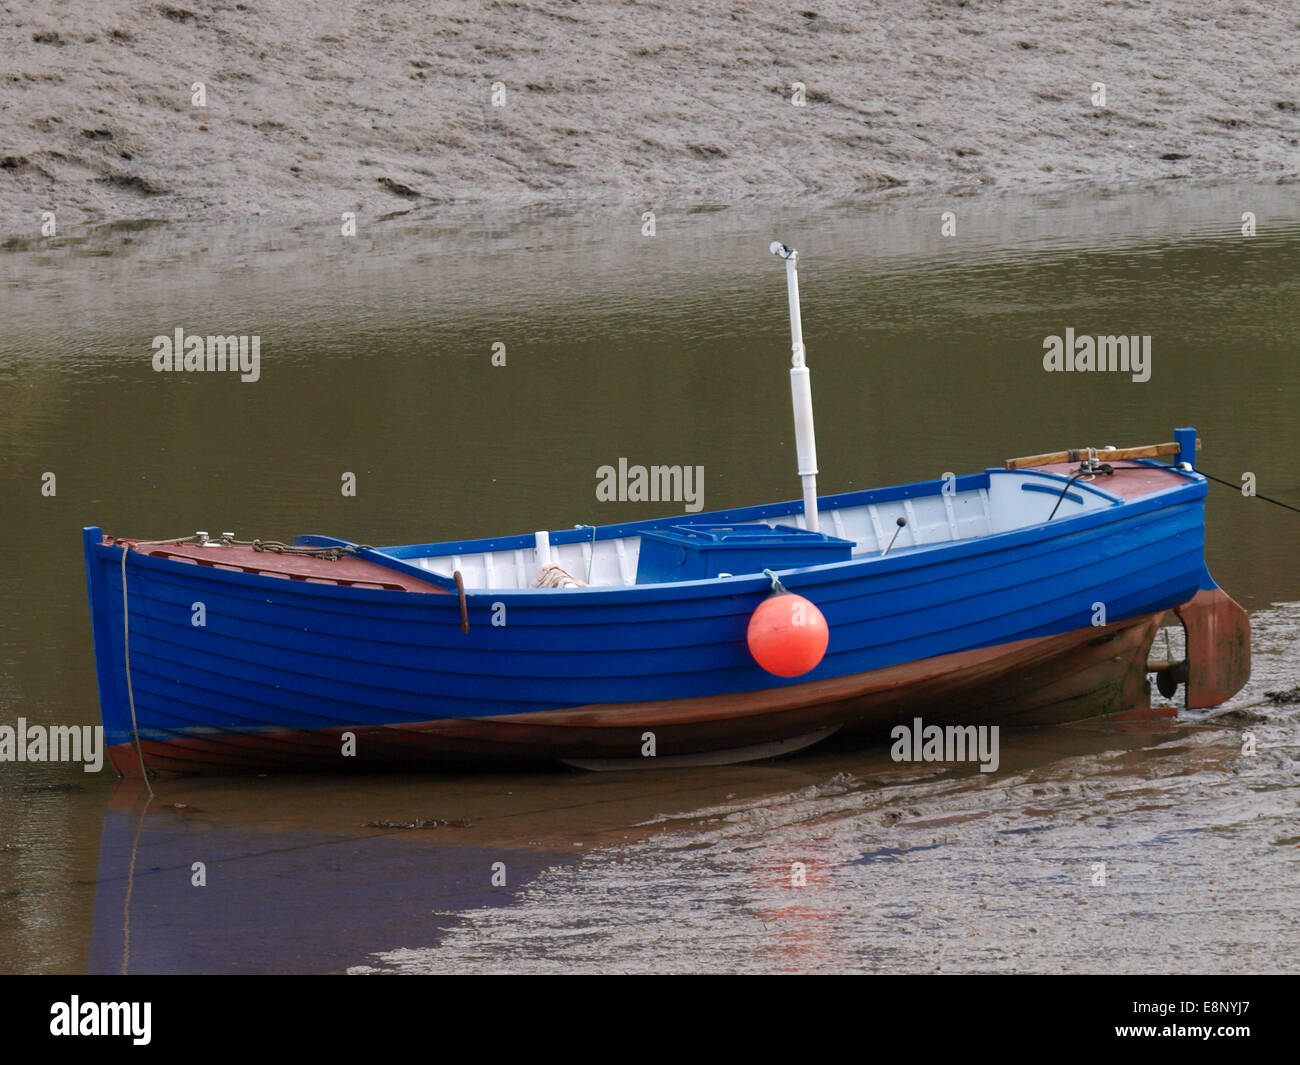 Small engined open boat, Fremington, Devon, UK - Stock Image